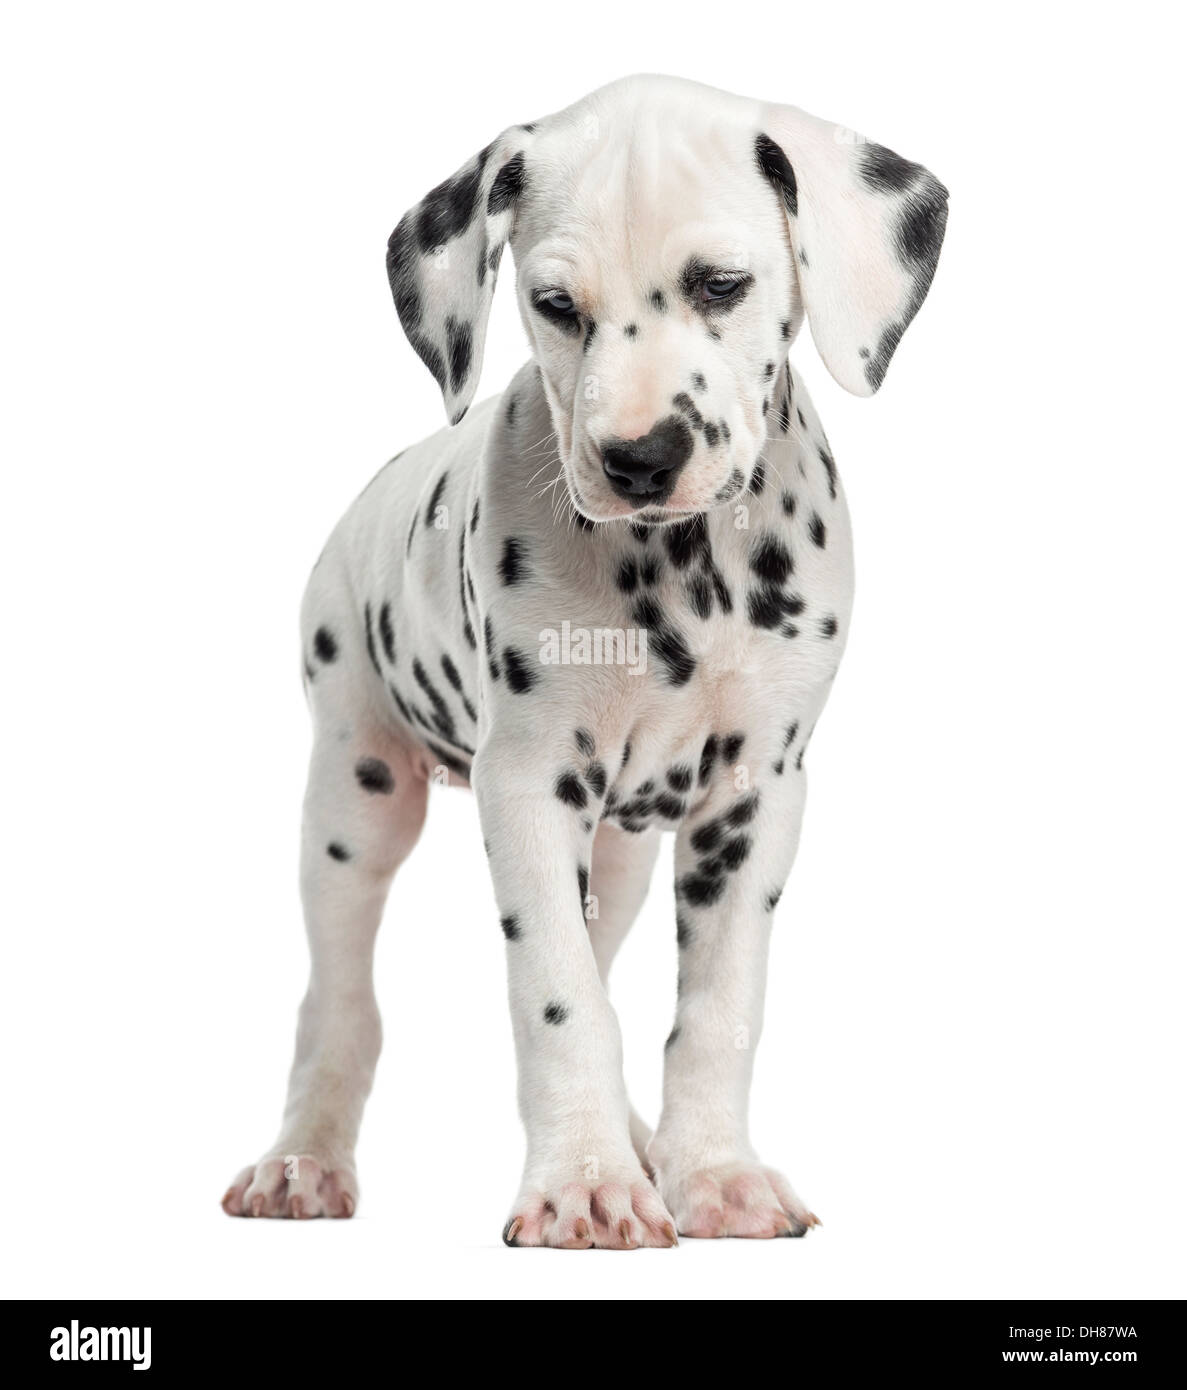 Front view of a Dalmatian puppy standing against white background - Stock Image